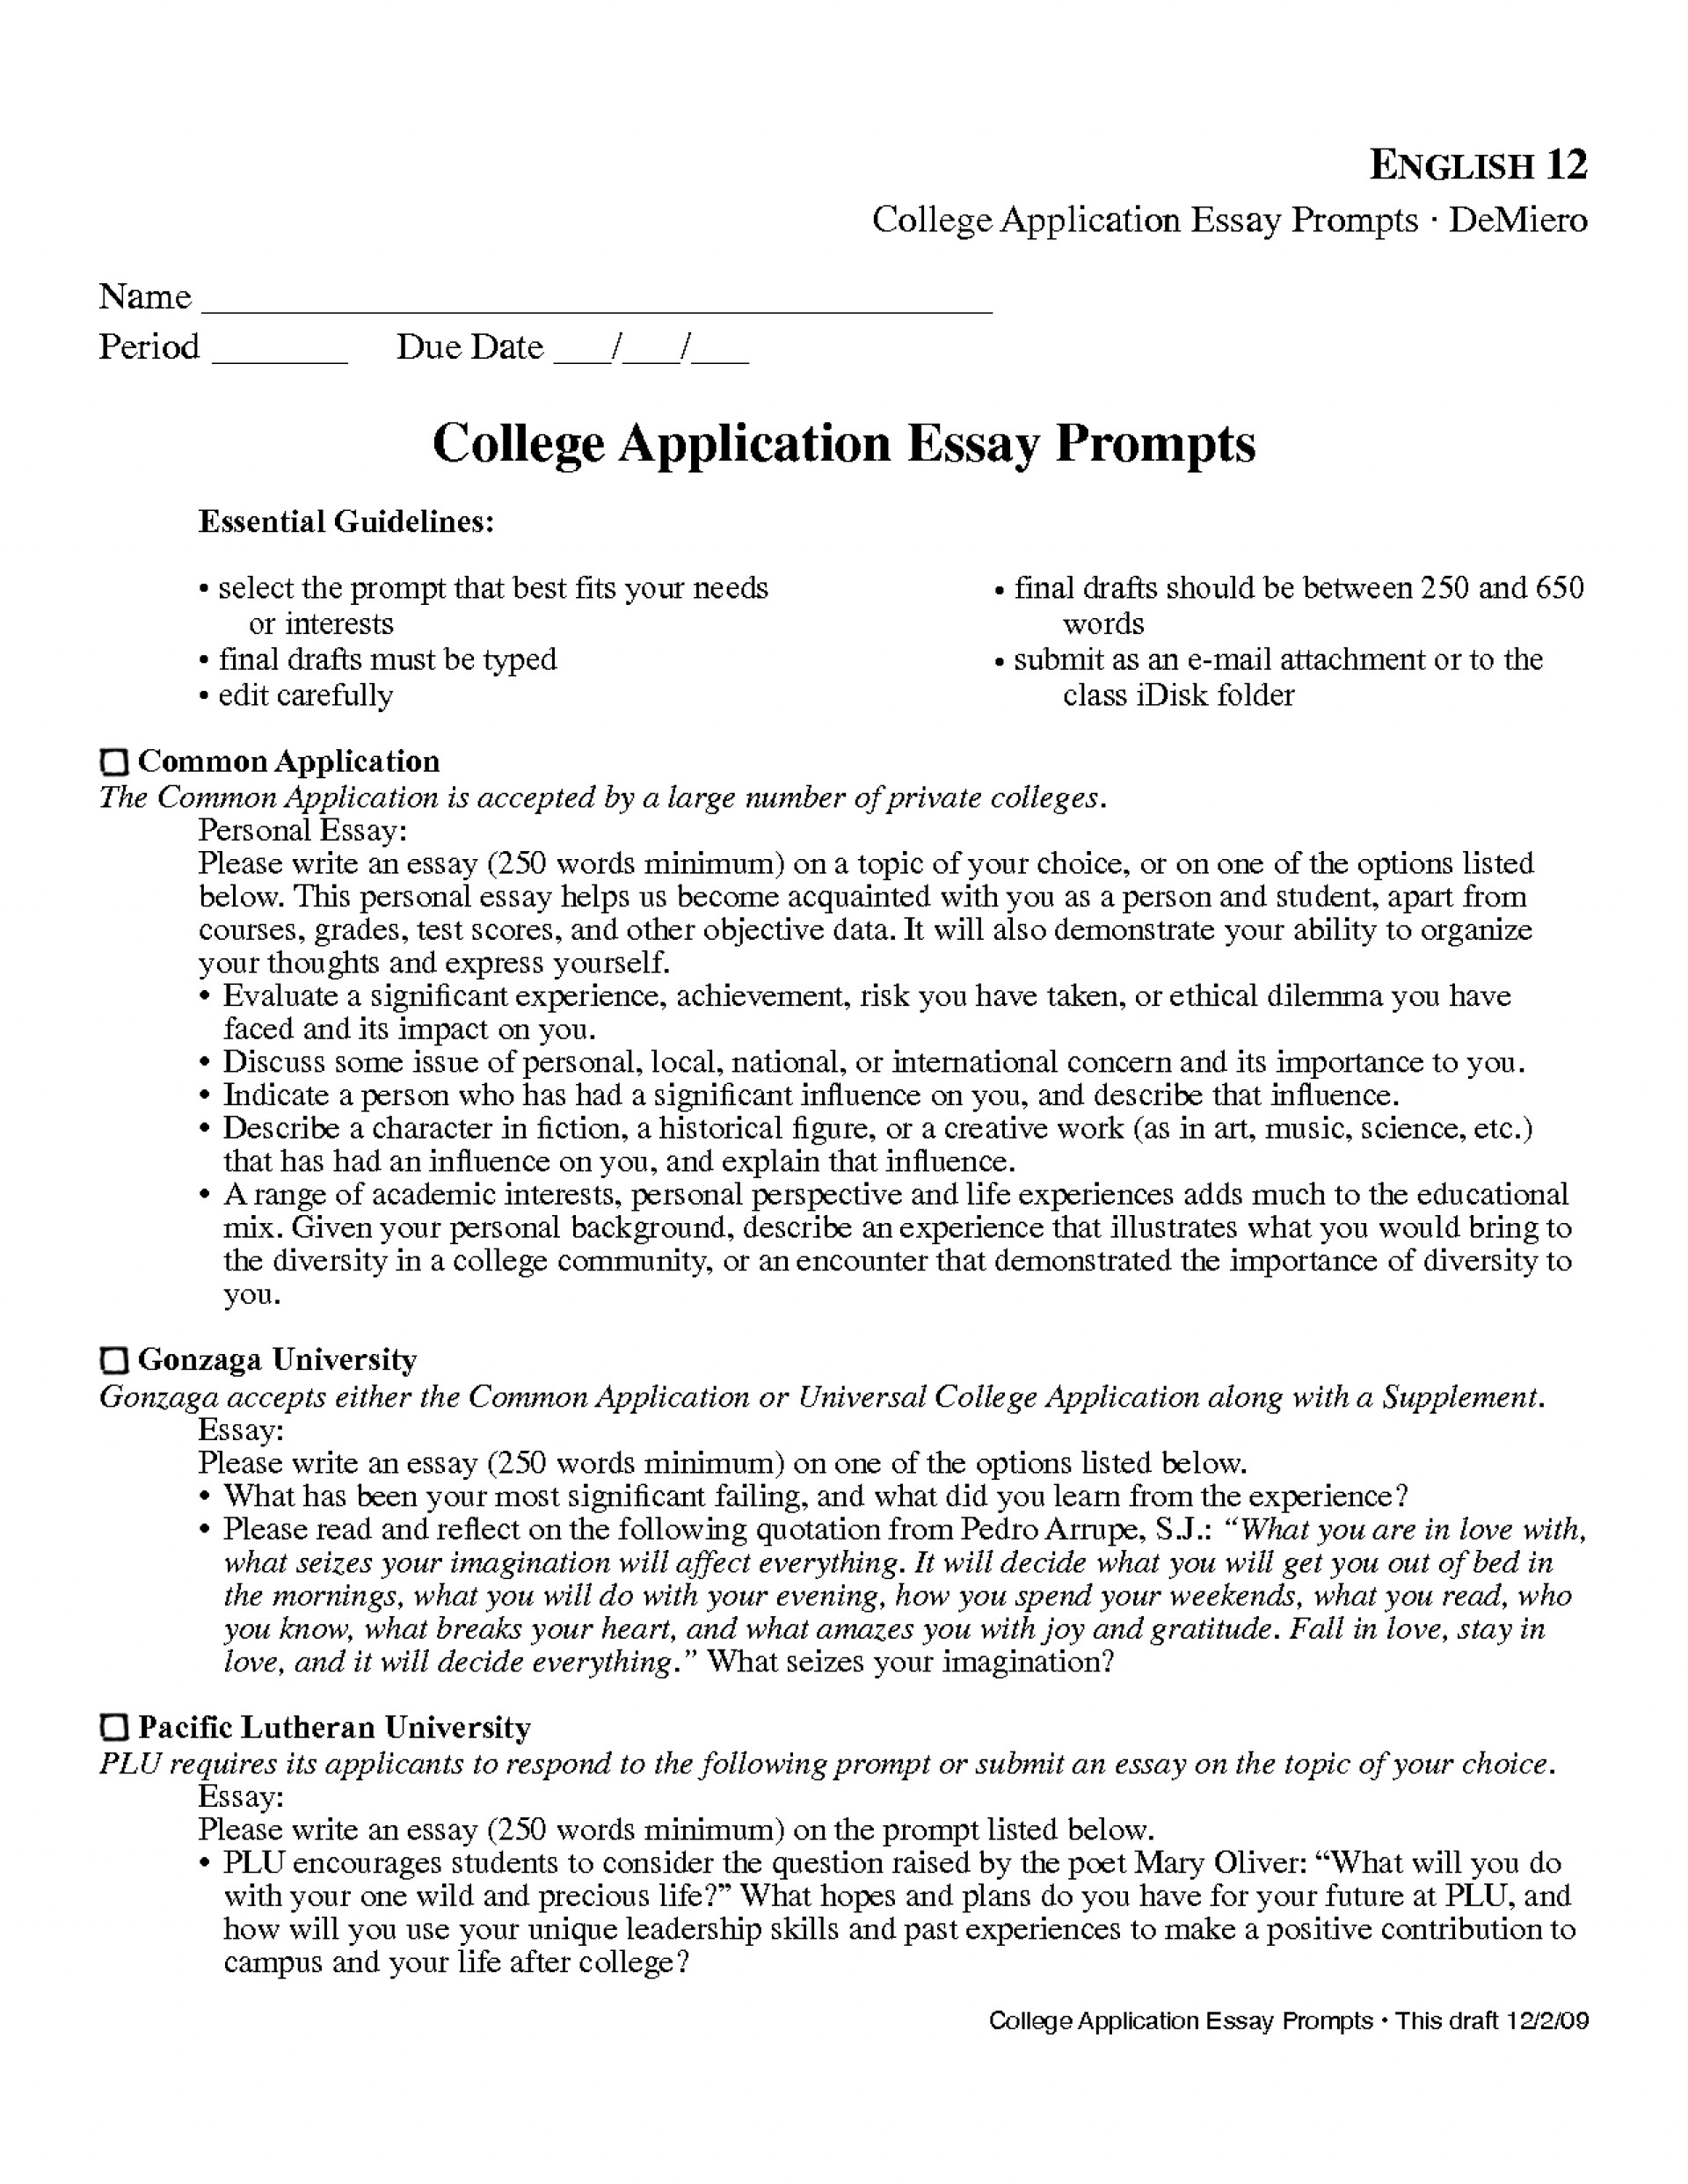 003 Essay Example Common App Prompt Prompts Provided By Application College Confidential Physic Minimalistics Co Inside Format Unusual Examples 4 Word Limit 1920